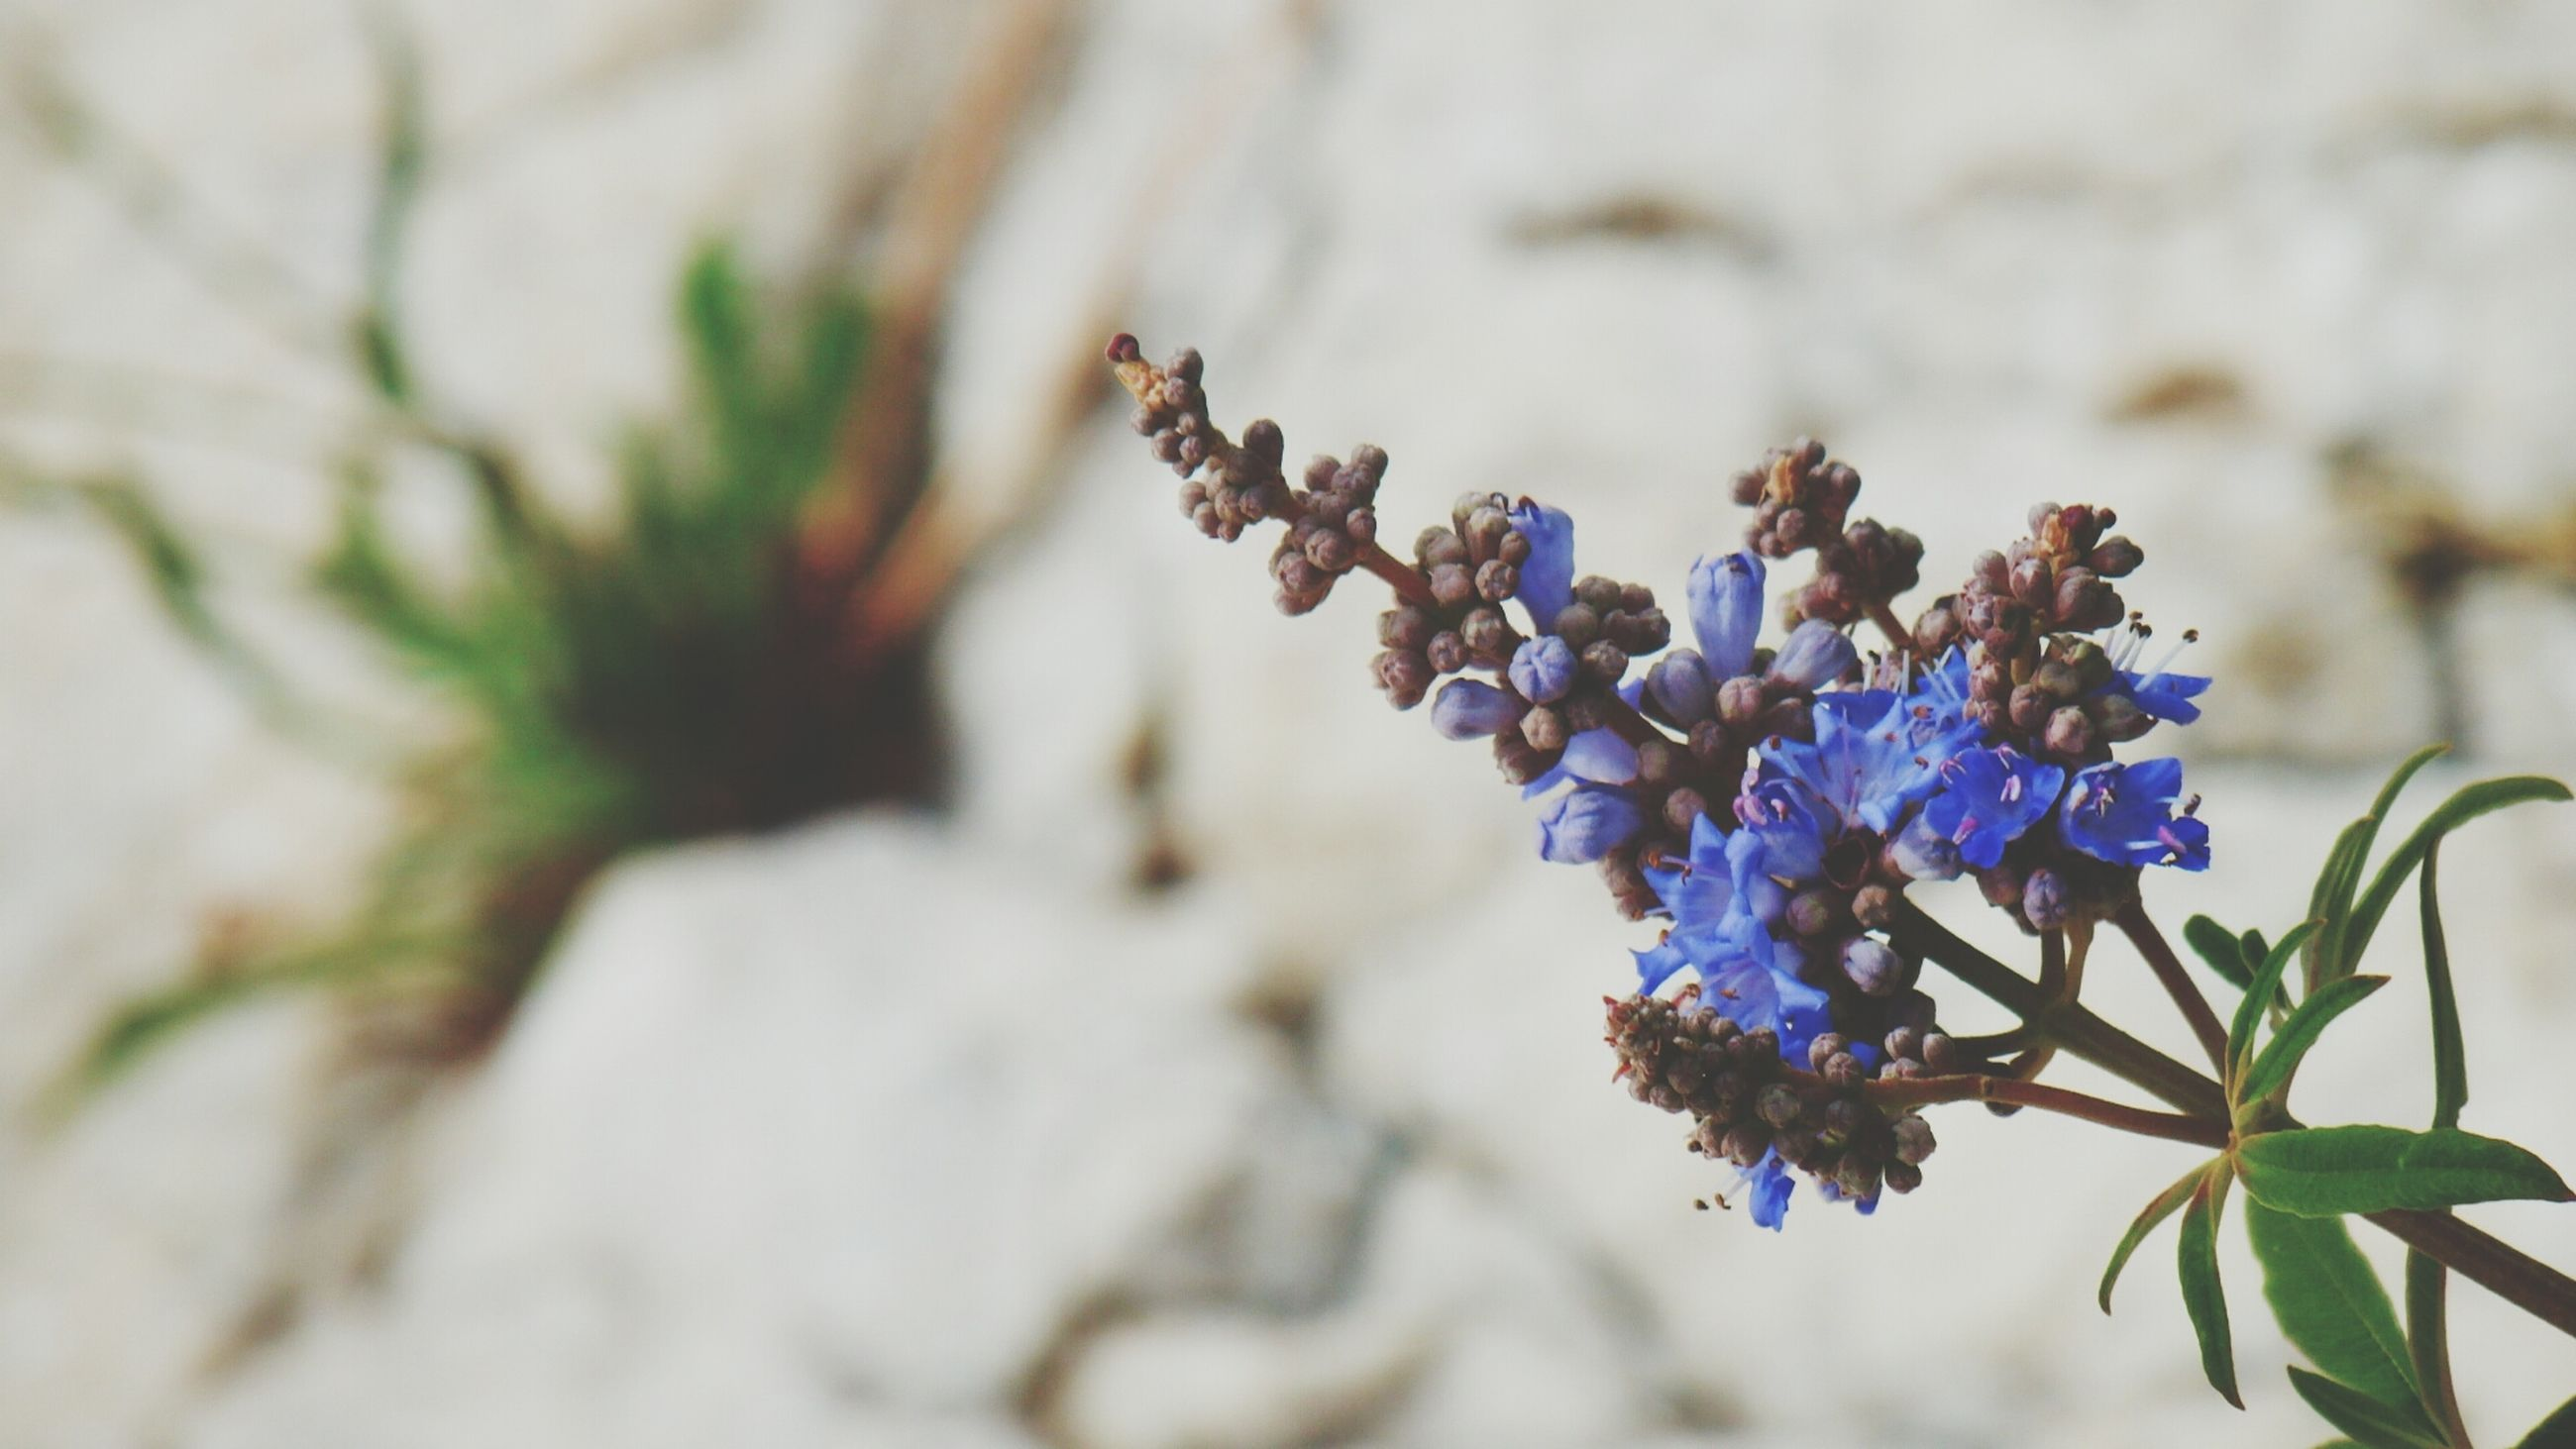 growth, flower, freshness, close-up, plant, focus on foreground, fragility, purple, nature, selective focus, leaf, beauty in nature, blue, bud, stem, day, petal, new life, blooming, outdoors